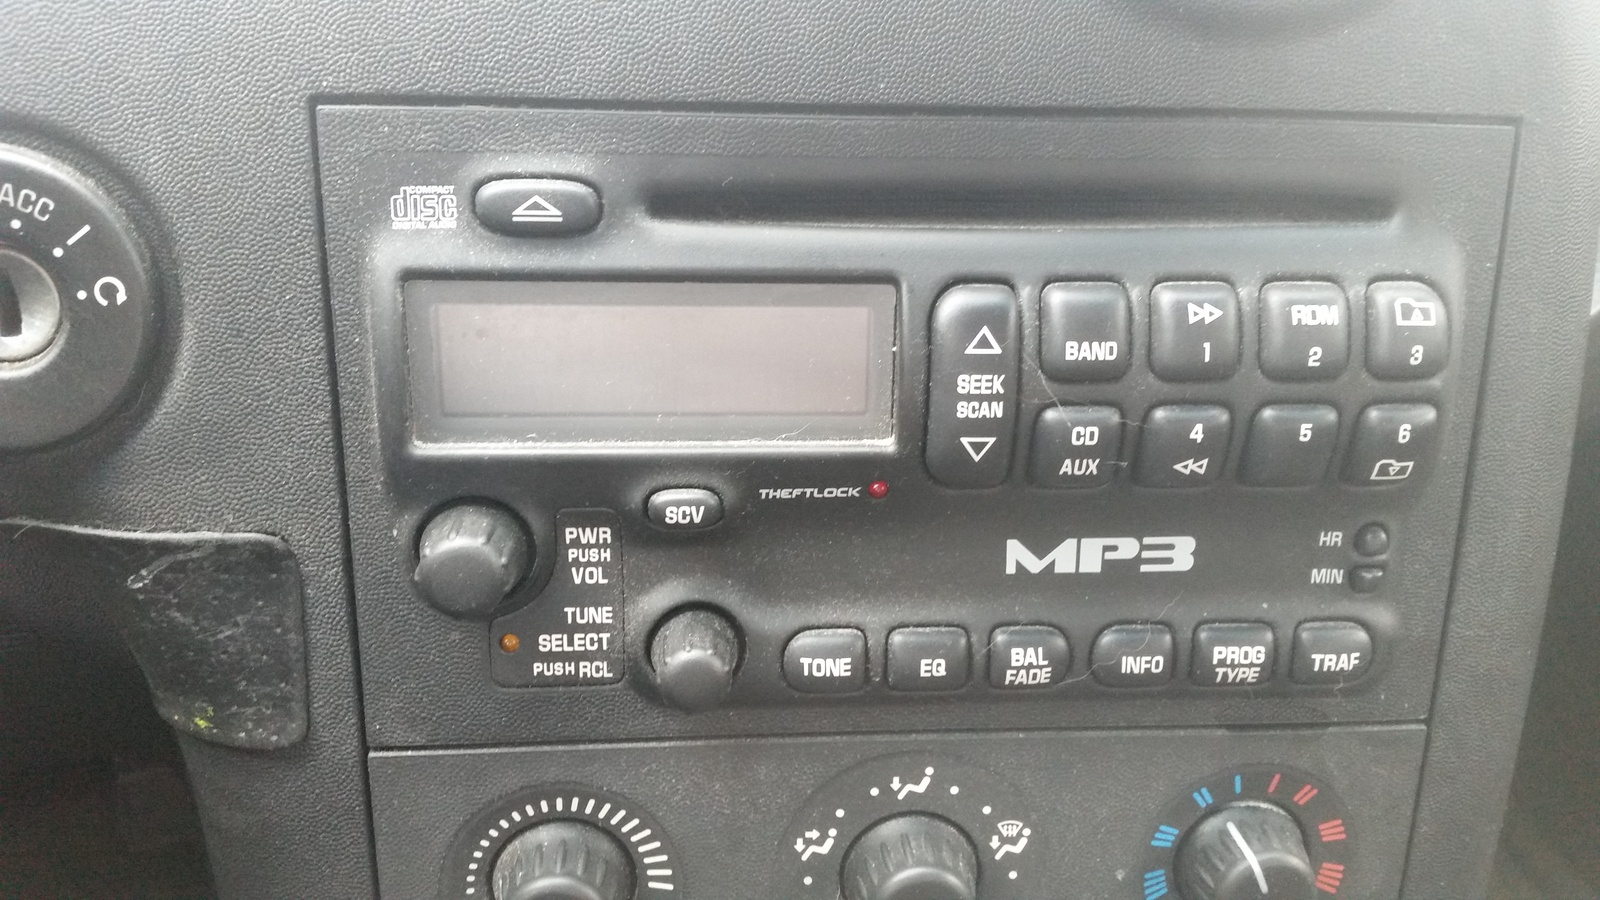 pontiac grand prix questions where is the load cd button on the Pontiac Grand AM Dash 1 answer